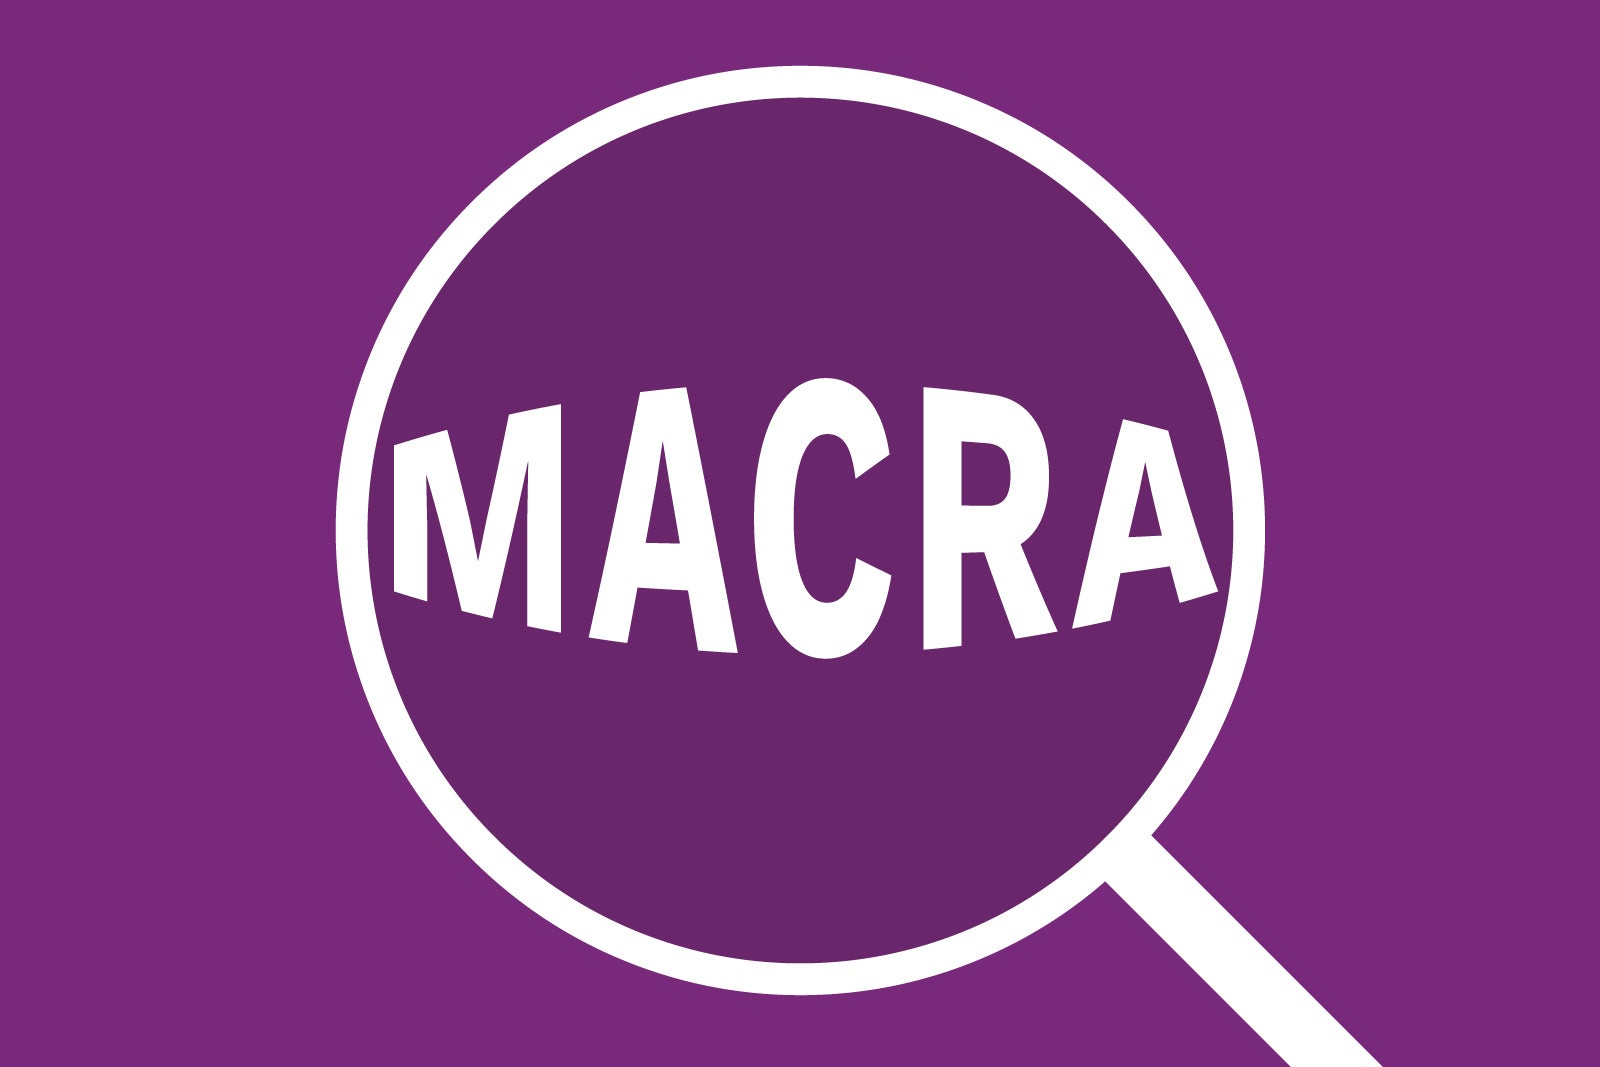 """MACRA"" shown in magnifying glass."